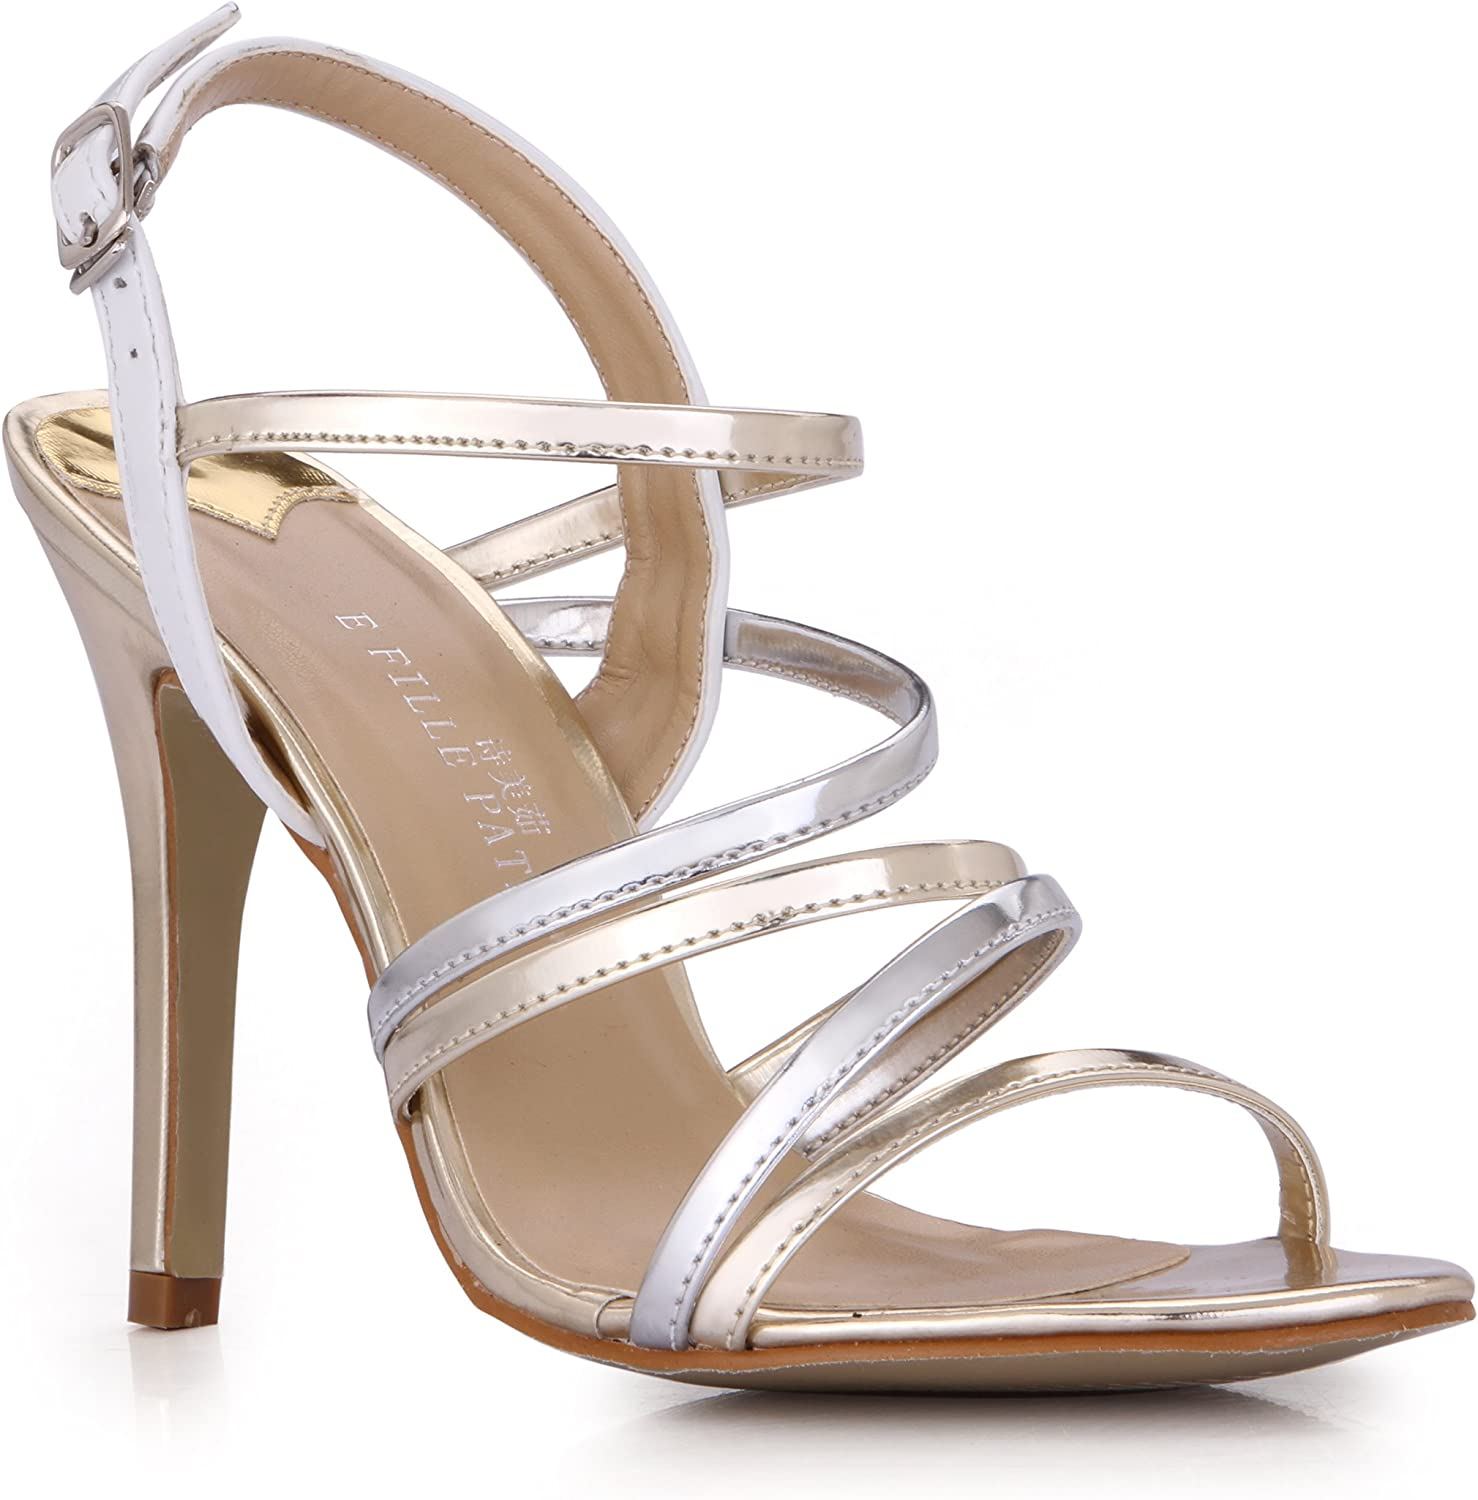 DolphinGirl Women's Silver Ankle Strap High Heels Sandals Court shoes SM00294